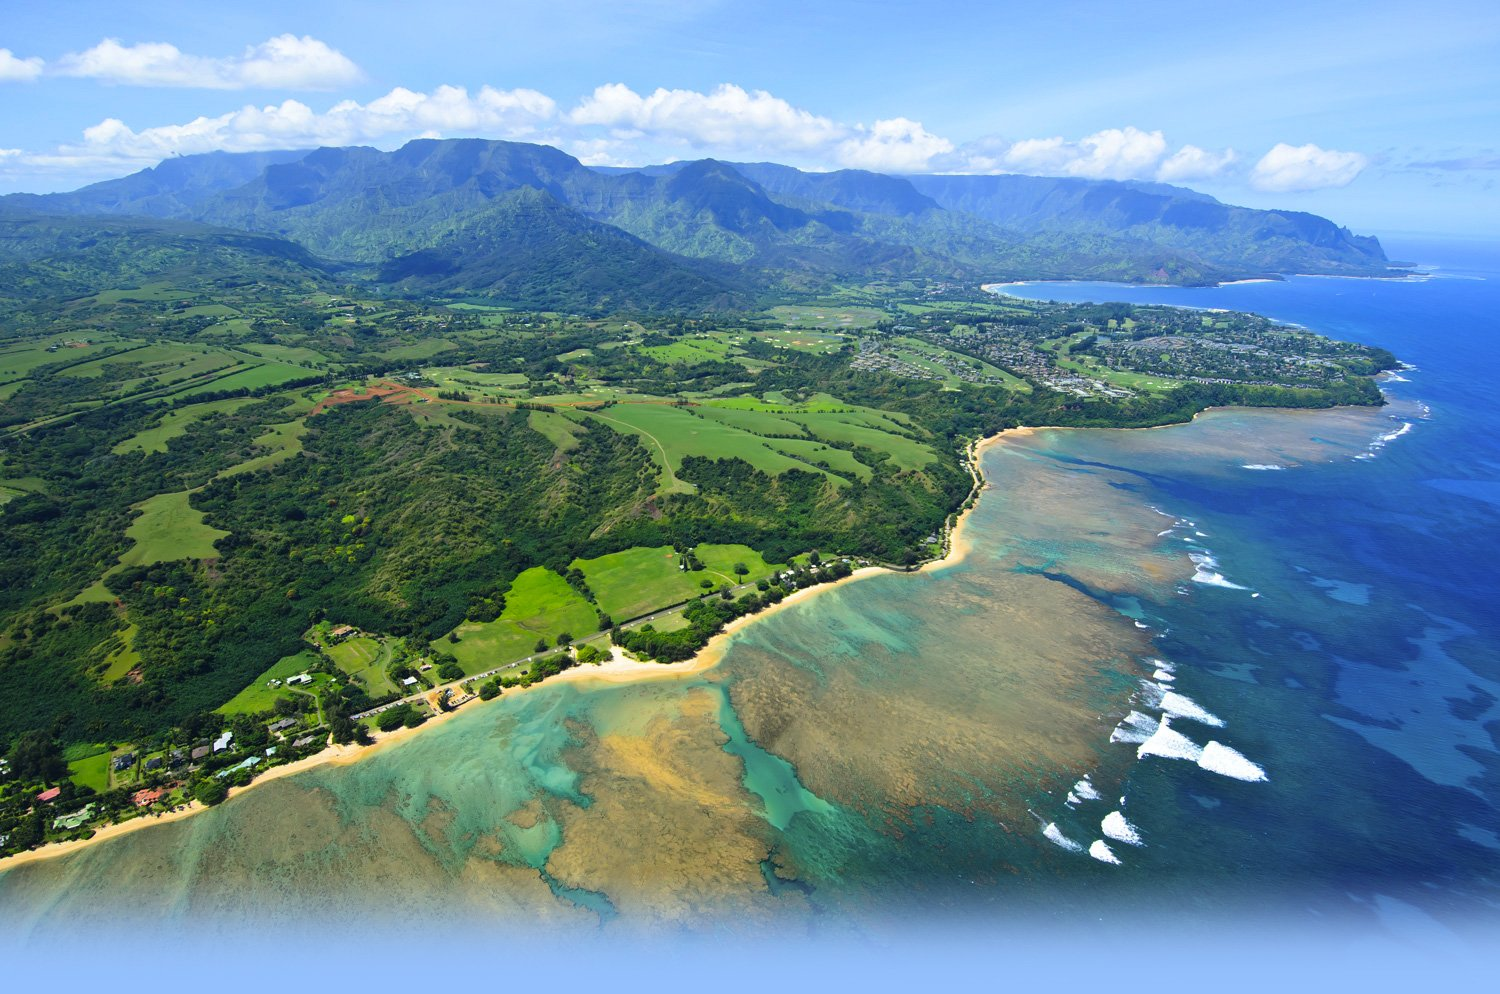 Kauai Vacation Specials - Princeville at Hanalei Resort, Kauai